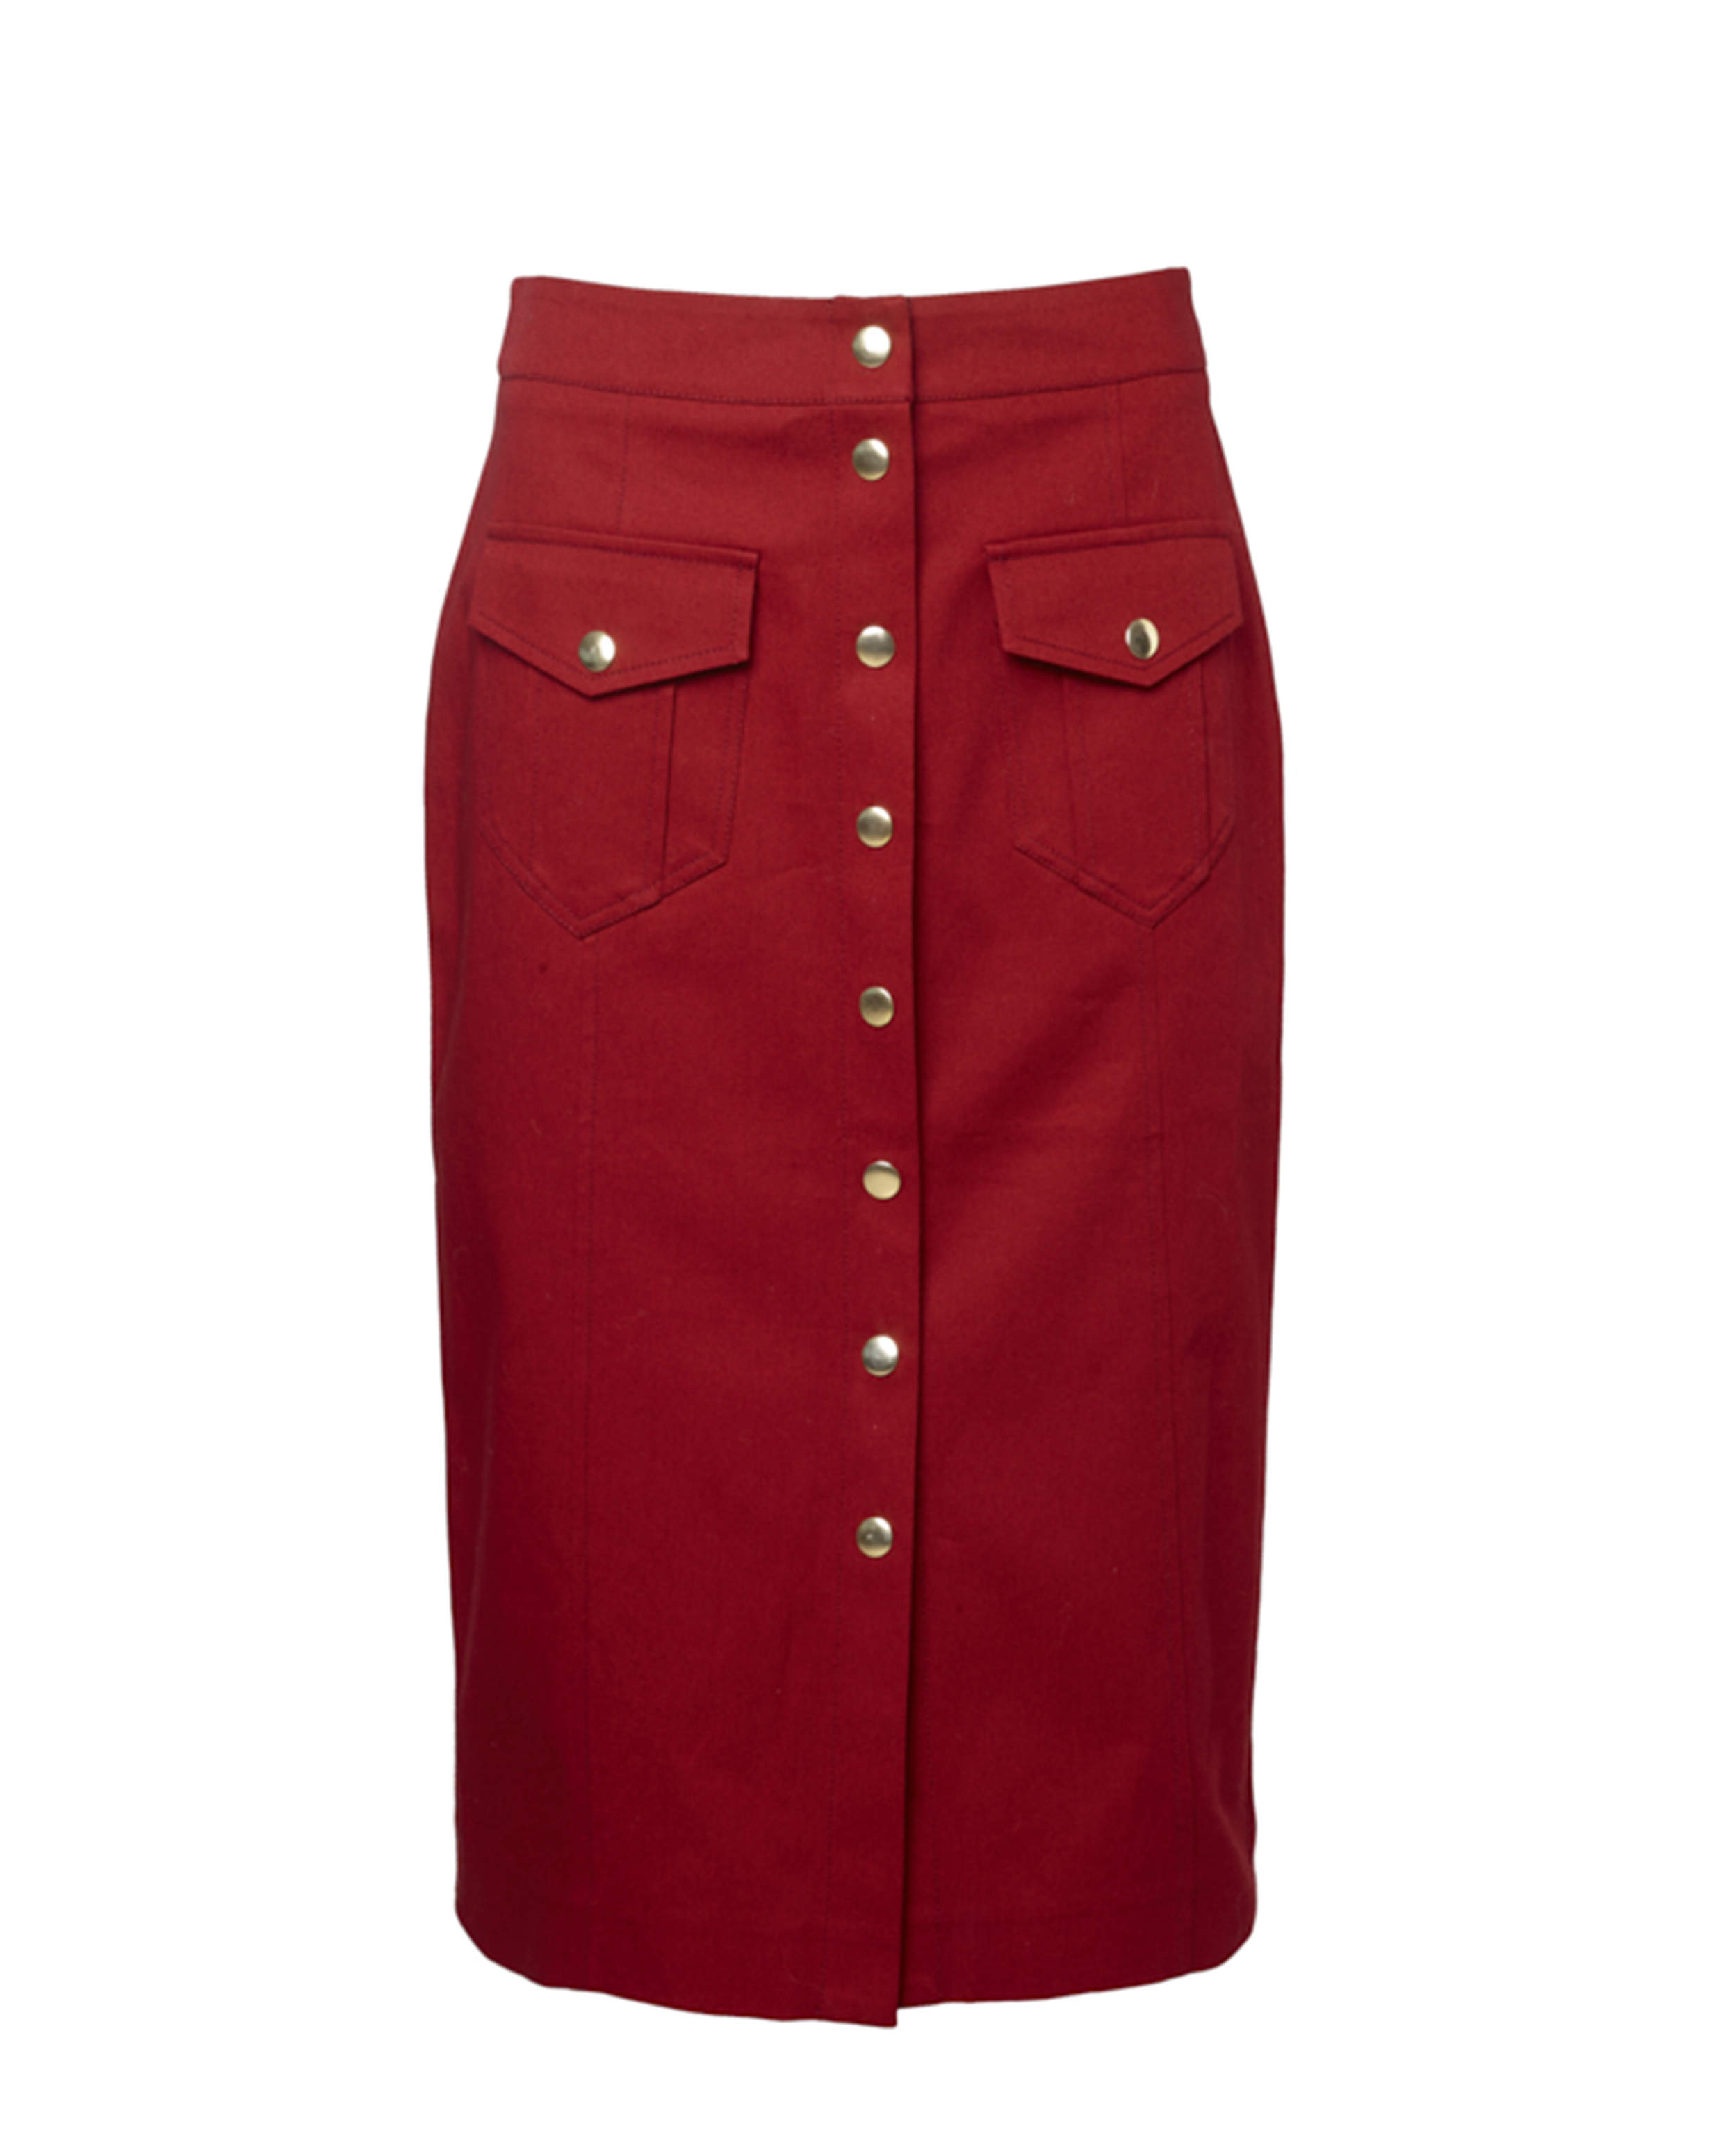 Rika 33 - Ruby Dome Skirt - Red